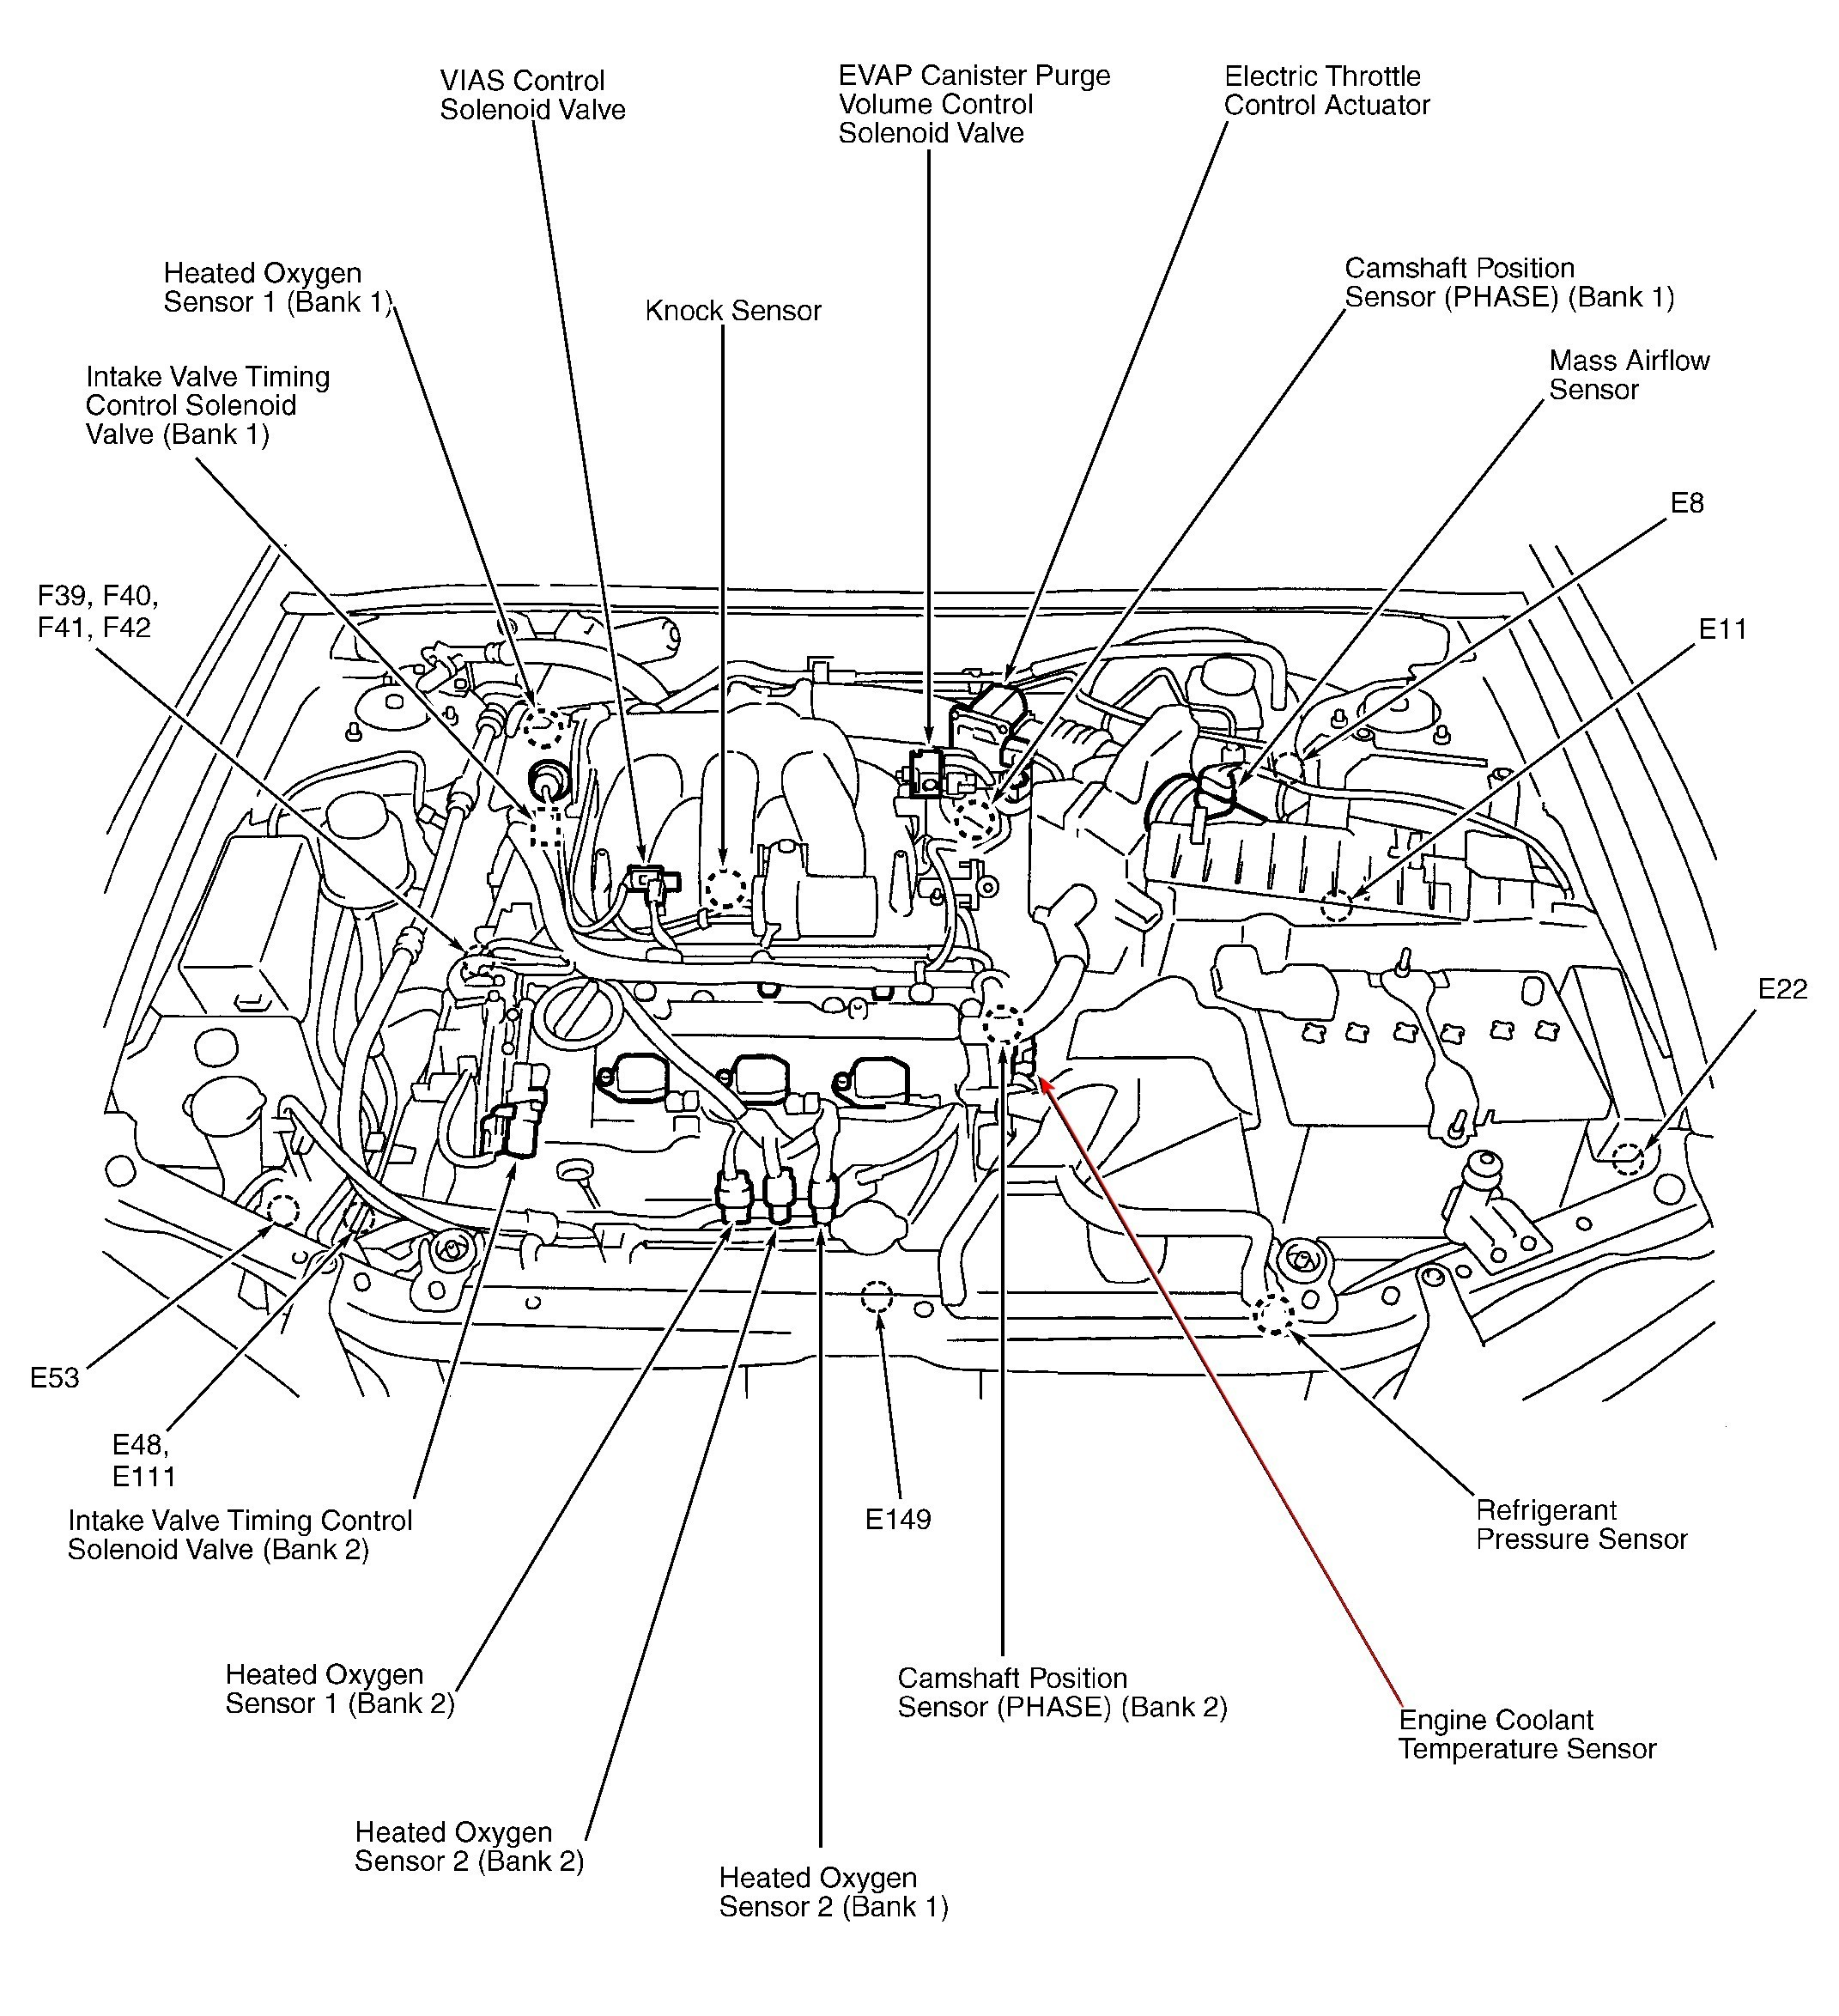 Wiring Diagram For Honda Recon Atv Trusted 1985 Fourtrax 02 Parts Electrical Work U2022 85